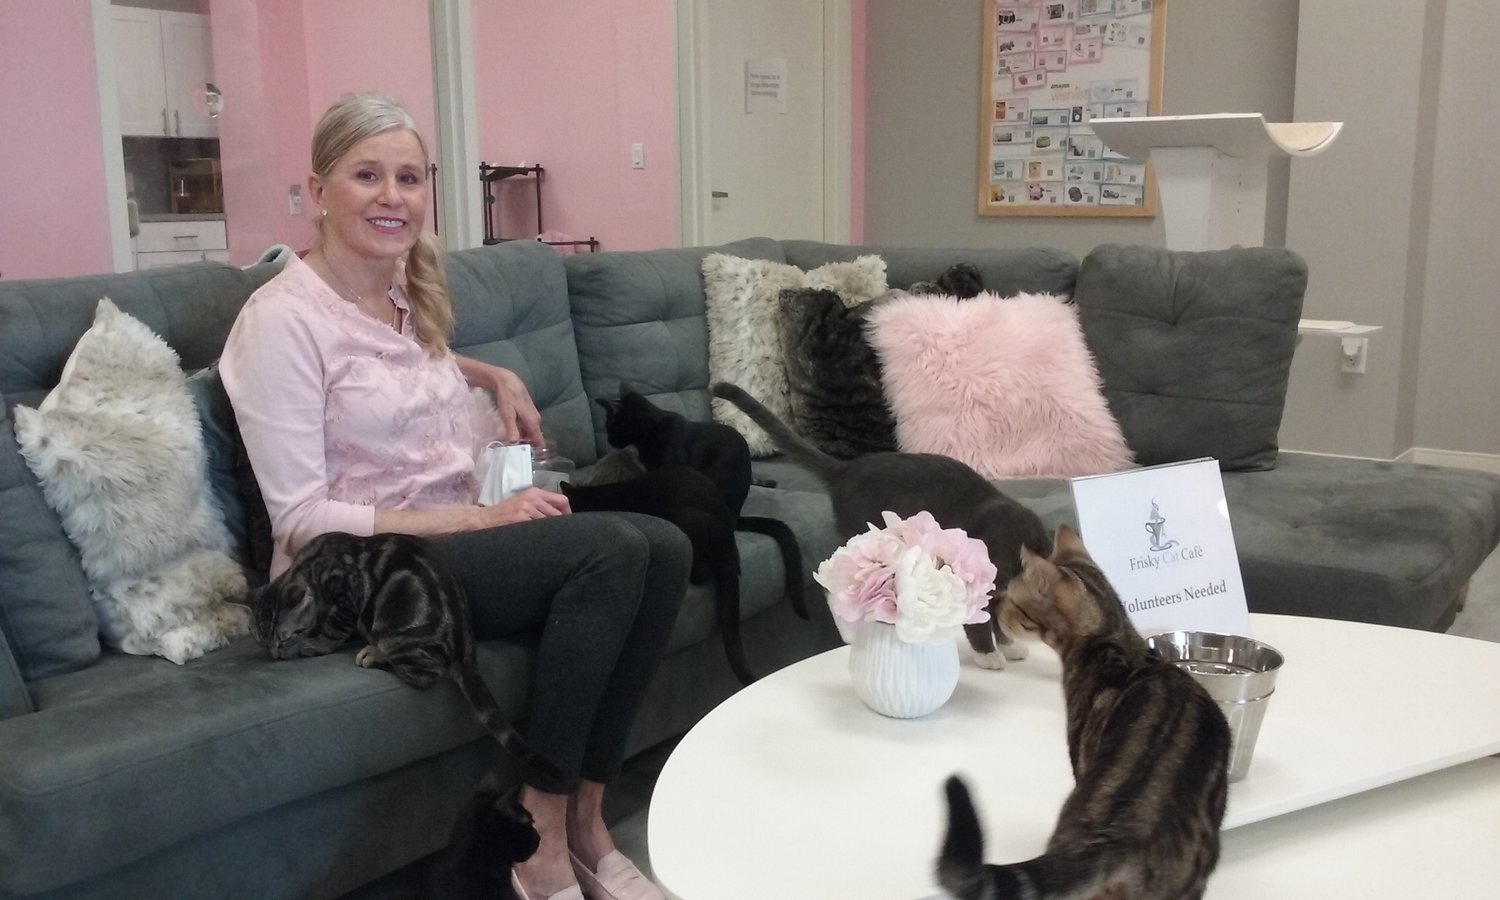 Carla Forrest has combined her passion for rescuing cats with her entrepreneurial spirit to create The Frisky Cat Café, a place where coffee-lovers can meet cats and kittens available for adoption.